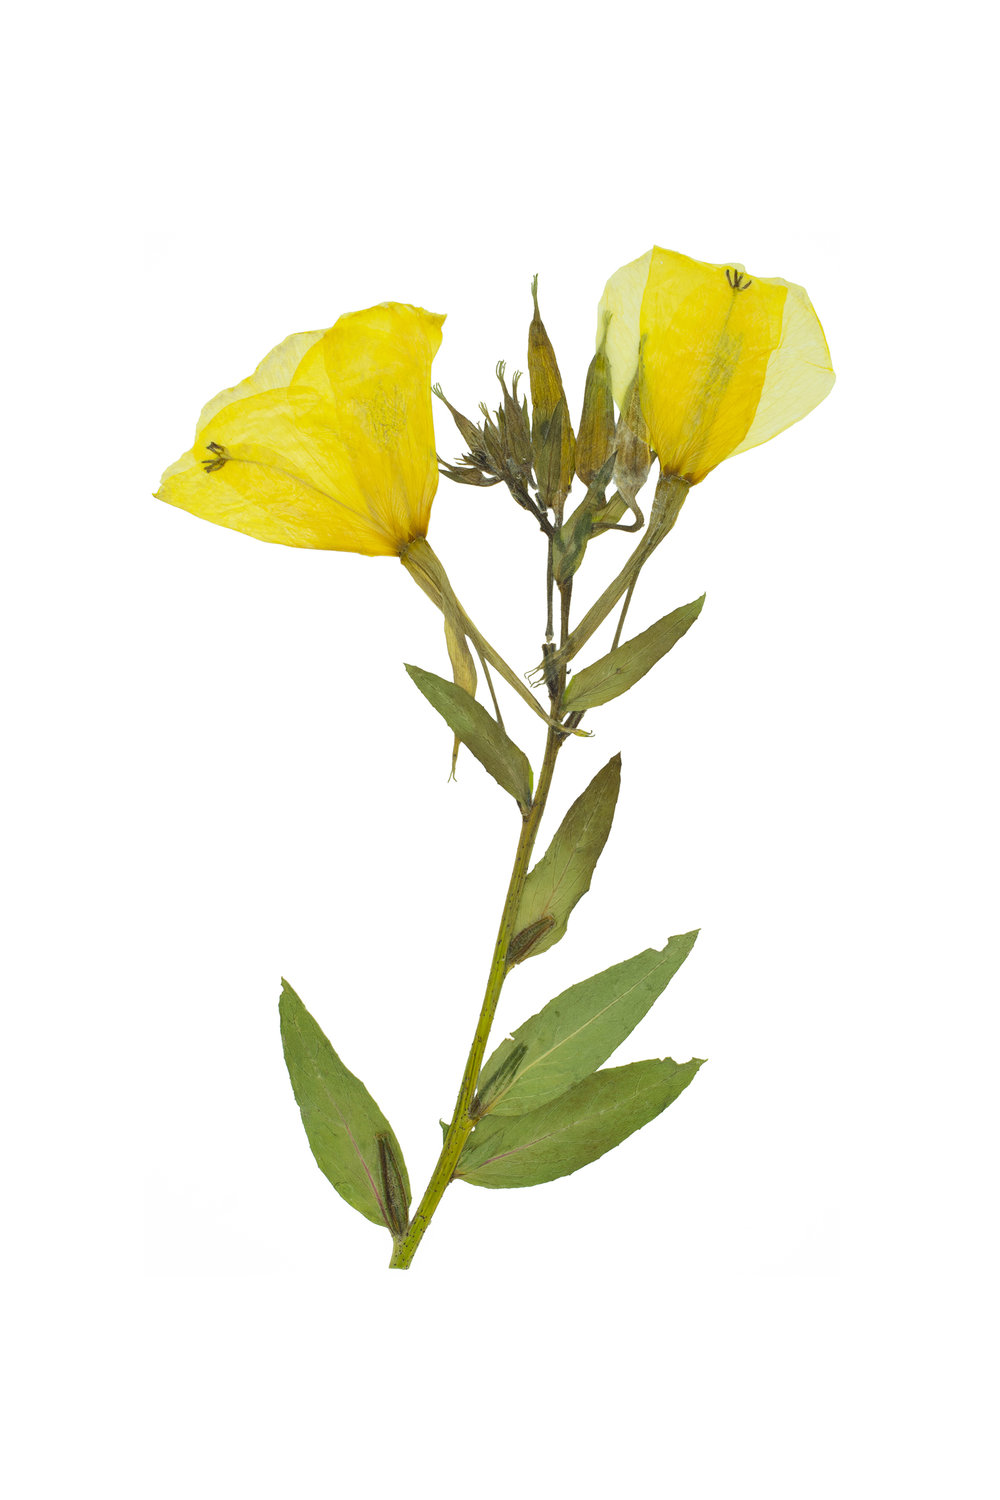 Large-Flowered Evening Primrose / Oenothera glazioviana